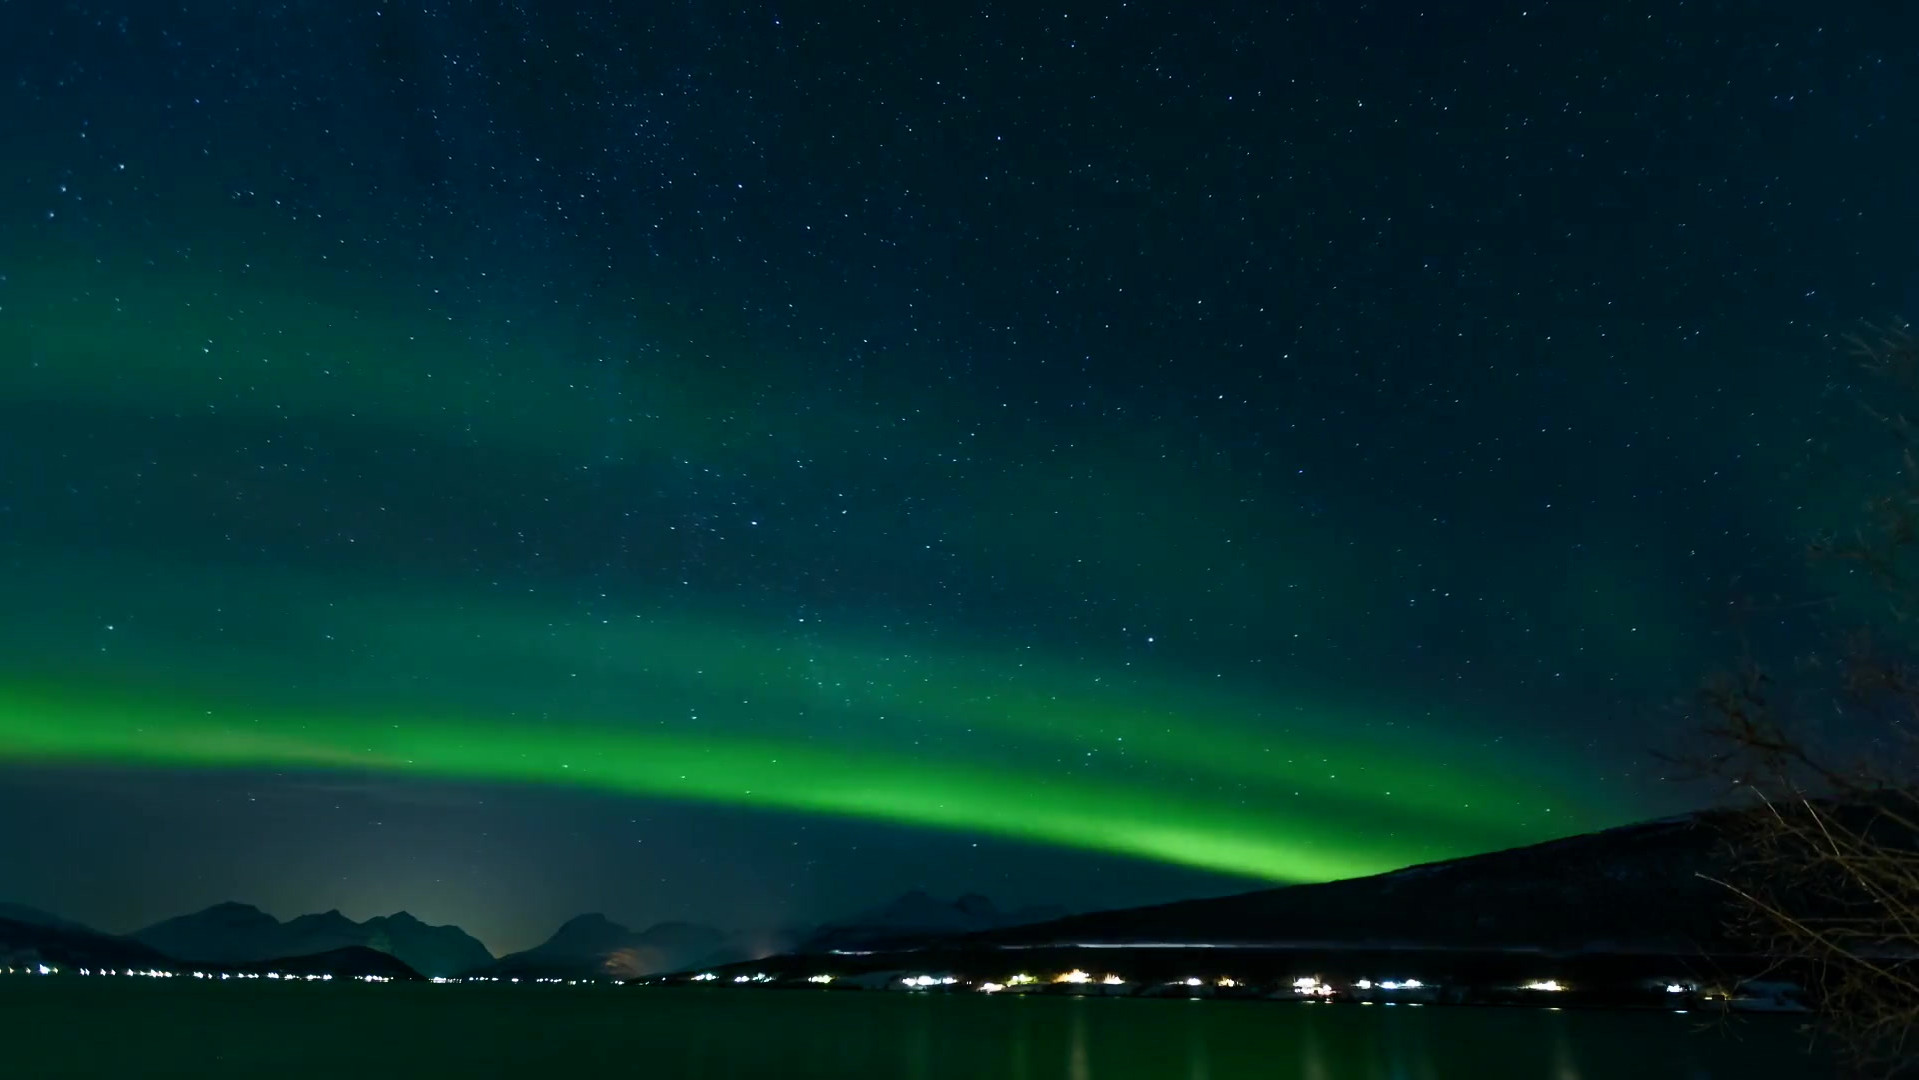 Time Lapse Video Of Aurora Borealis.mp4